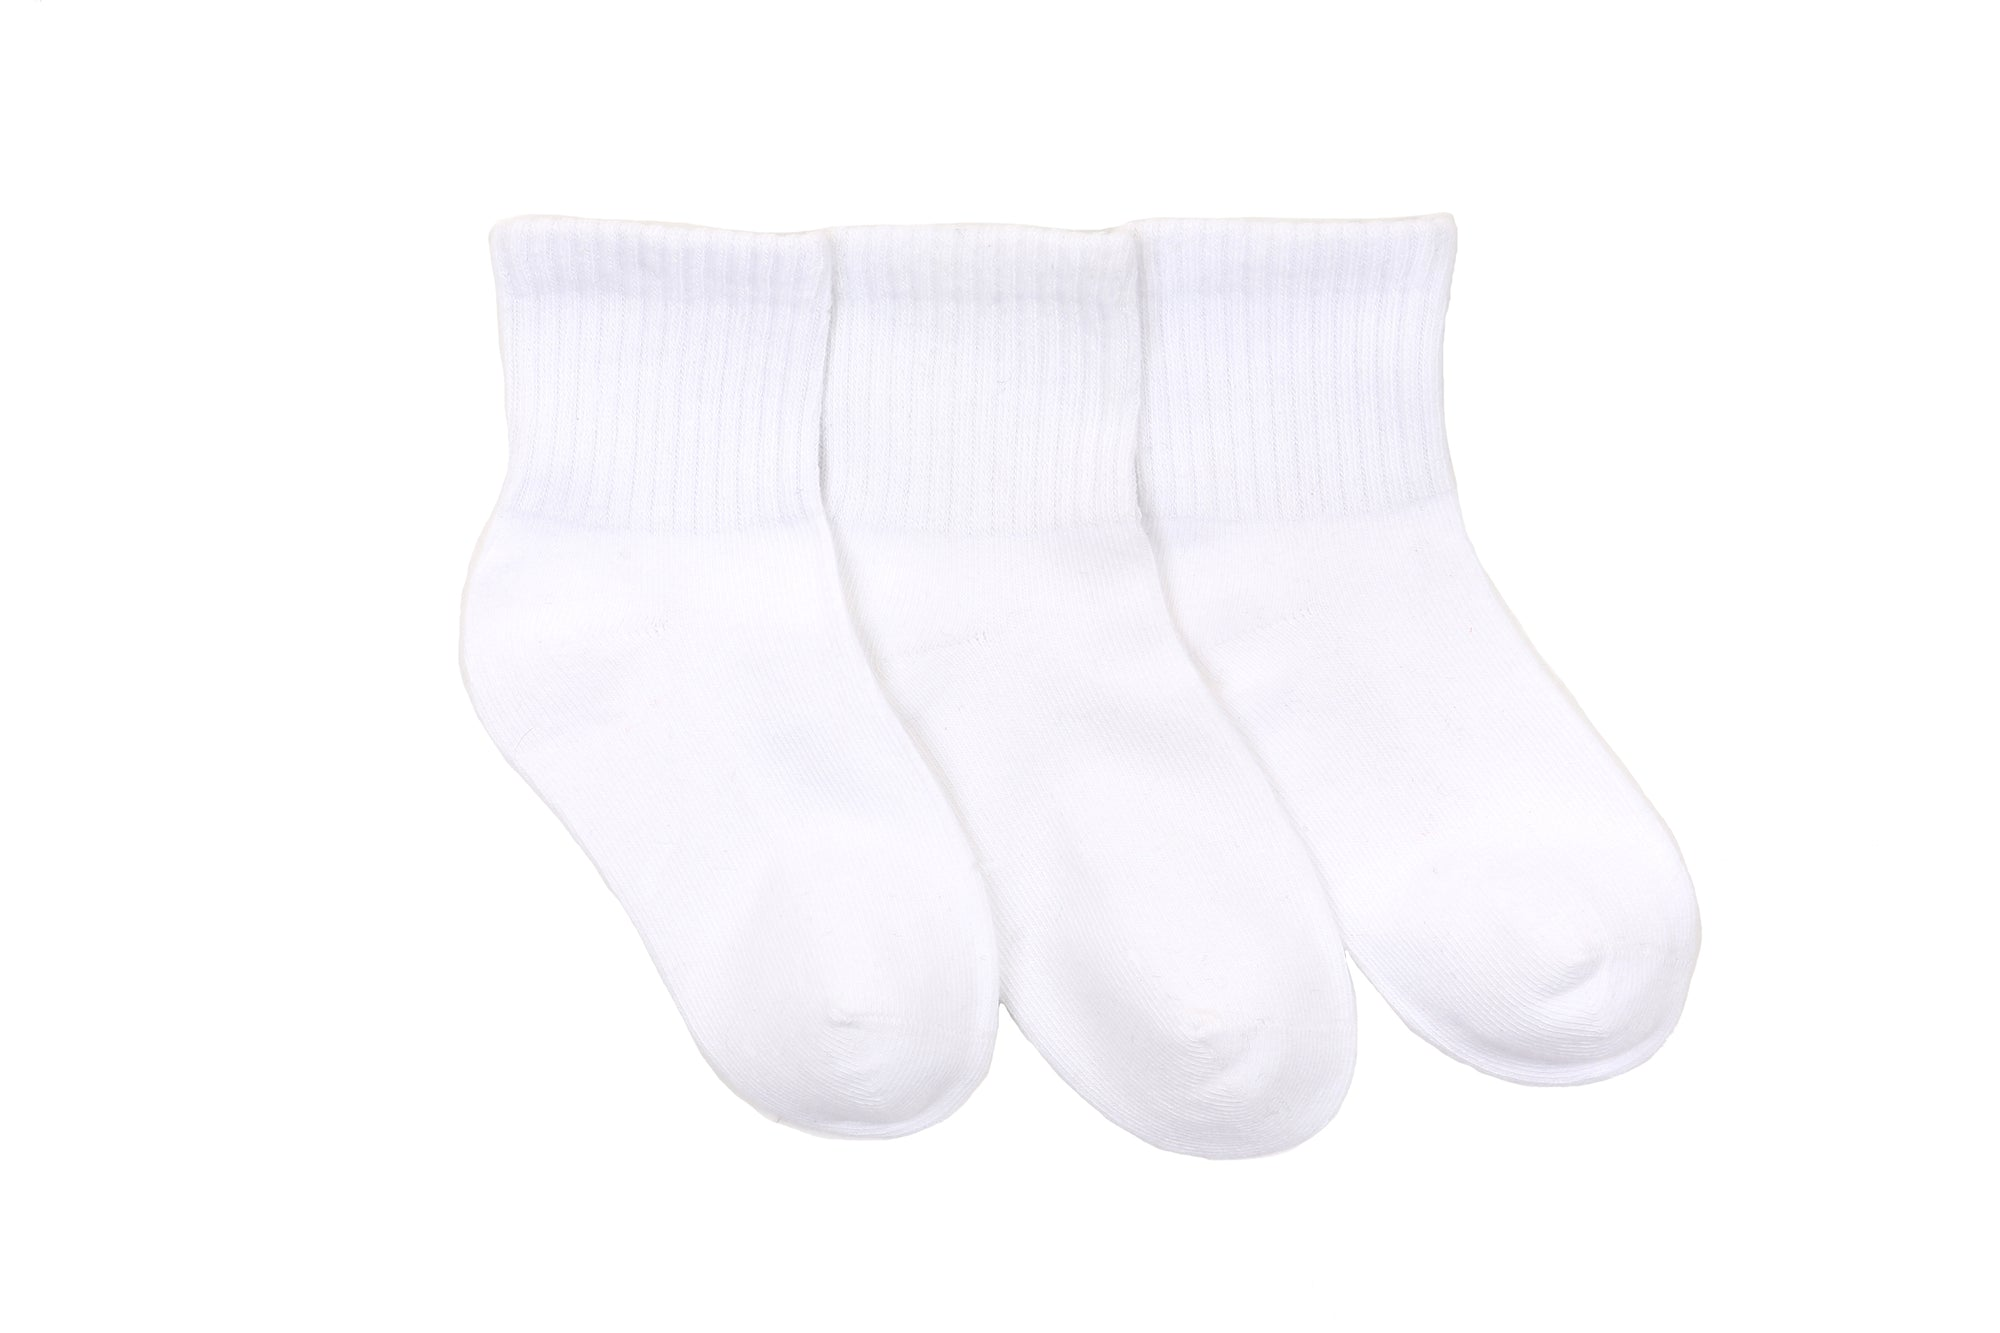 Stride Rite Quarter-Crew Sock (3 Pack) by Stride Rite - Ponseti's Shoes